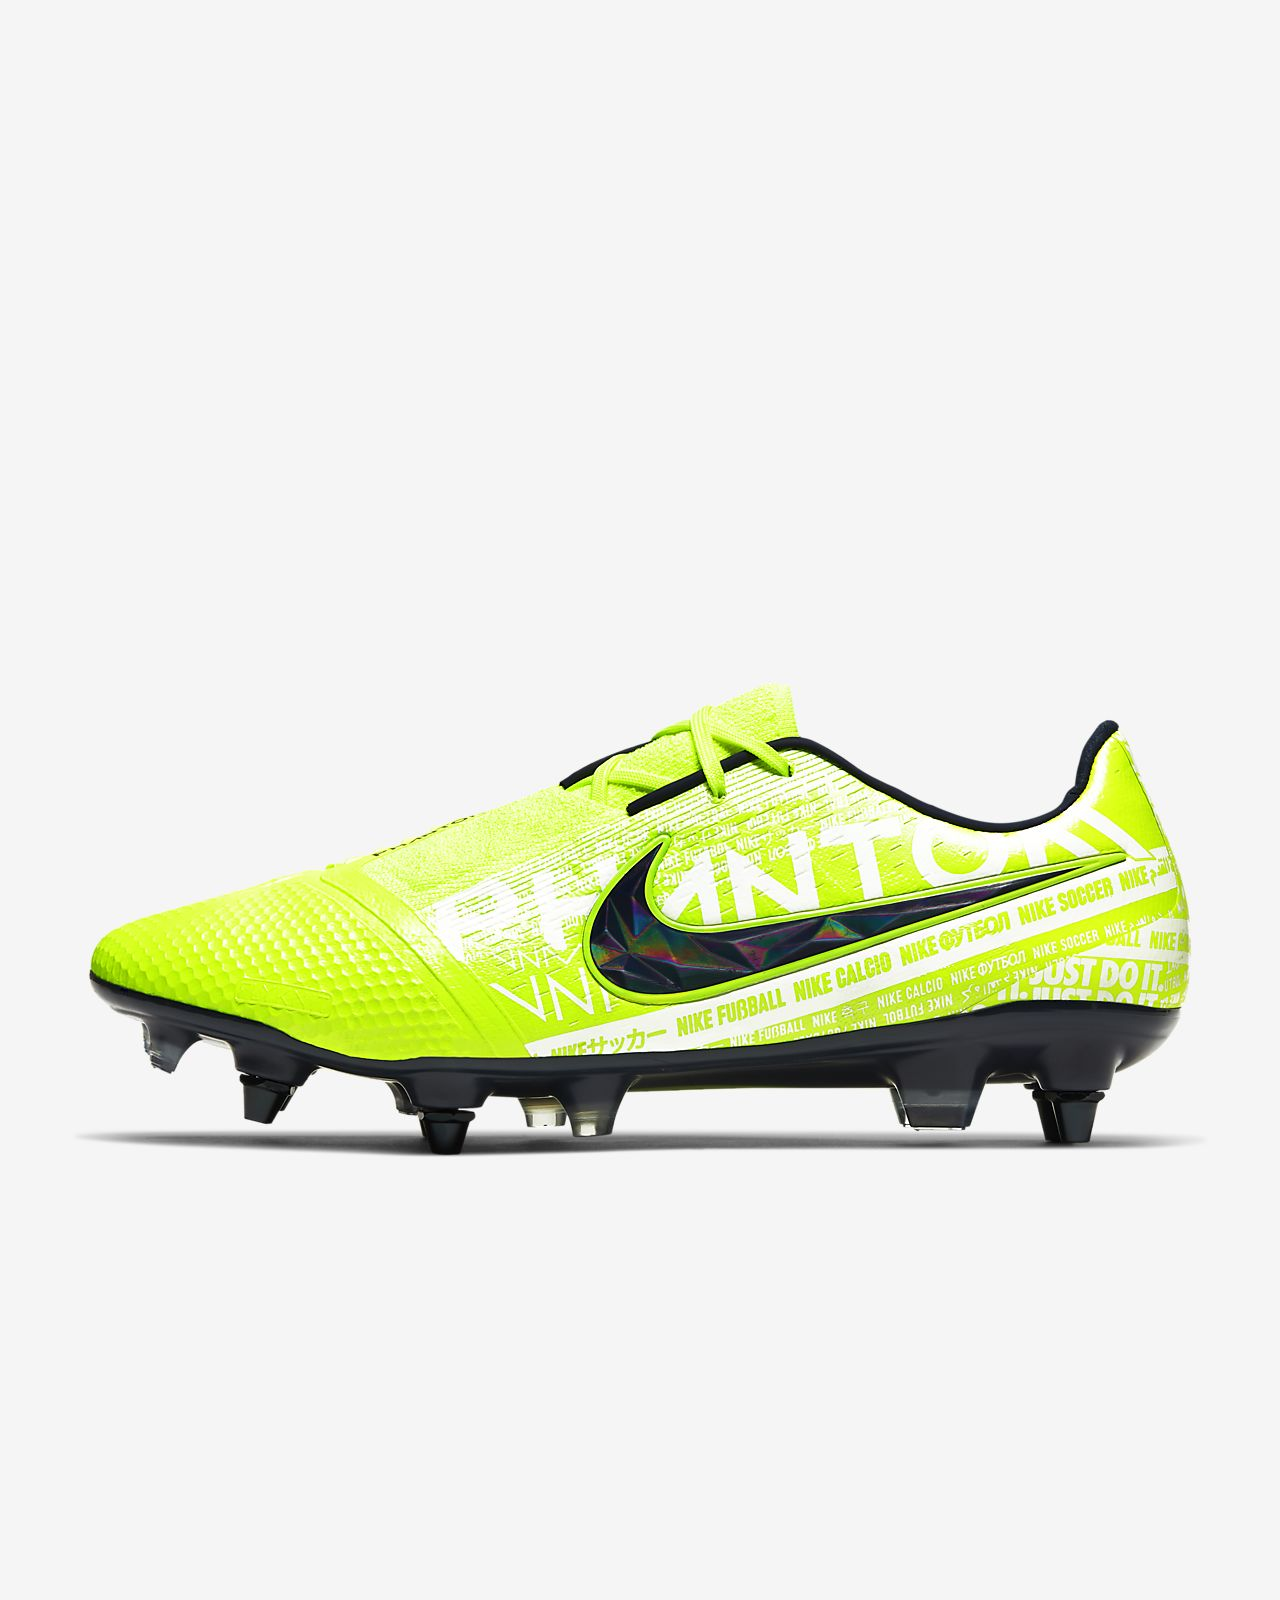 Nike Phantom Venom Elite SG-Pro Anti-Clog Traction Botes de futbol per a terreny tou